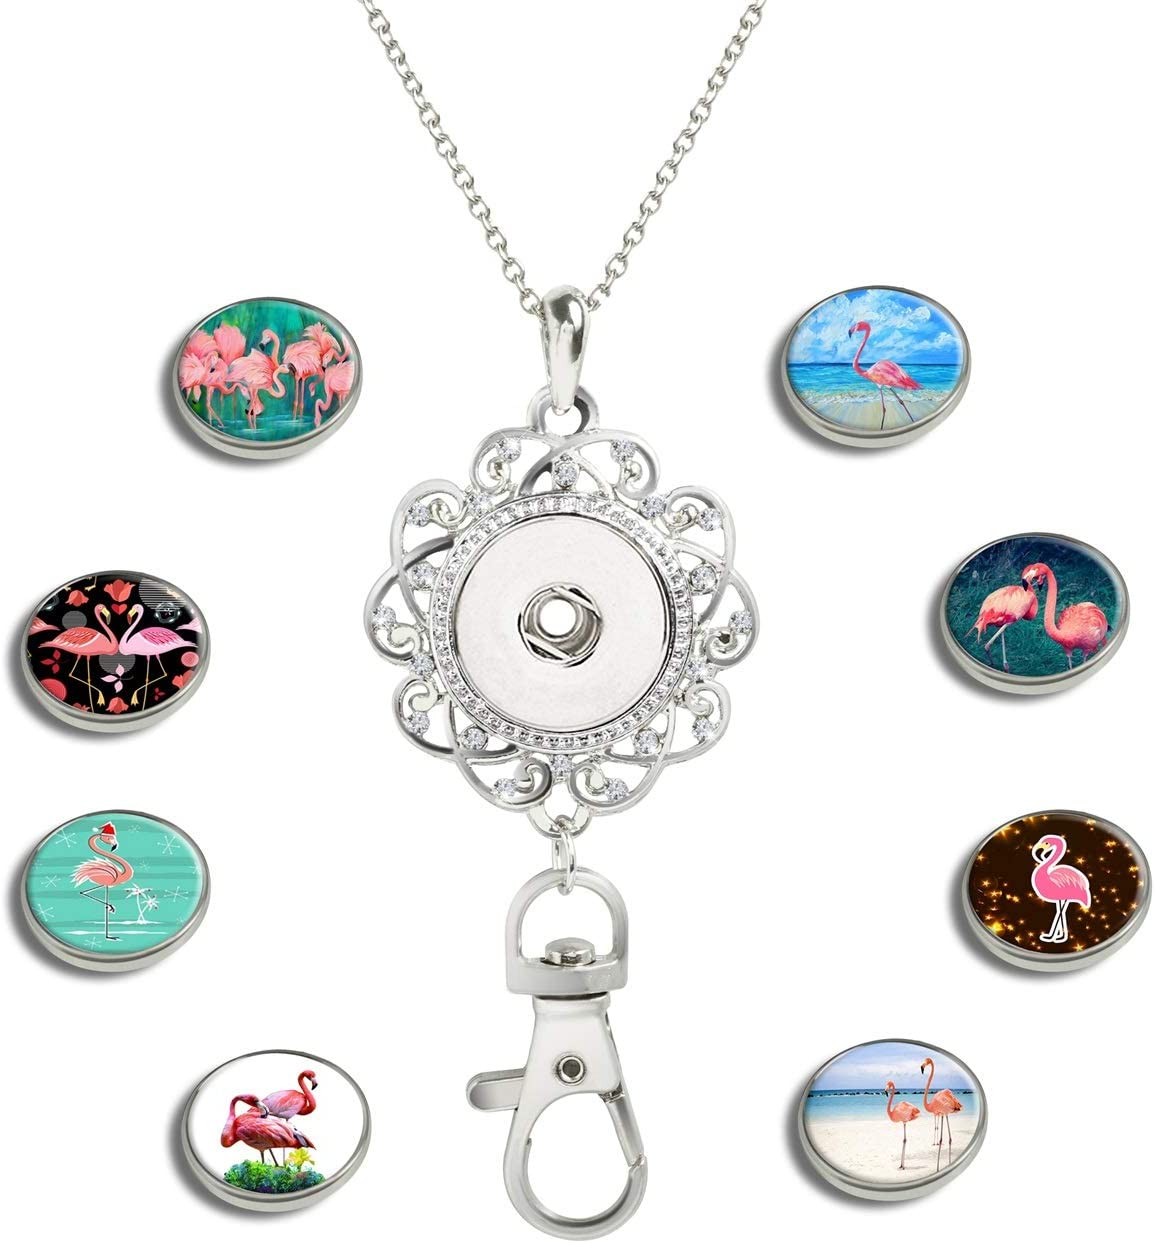 GDEE CUSTOM Womens Office Lanyard ID Badges Holder Necklace with 8pcs Image Glass Snap Charms Jewelry Pendant Clip Animal Panda-03